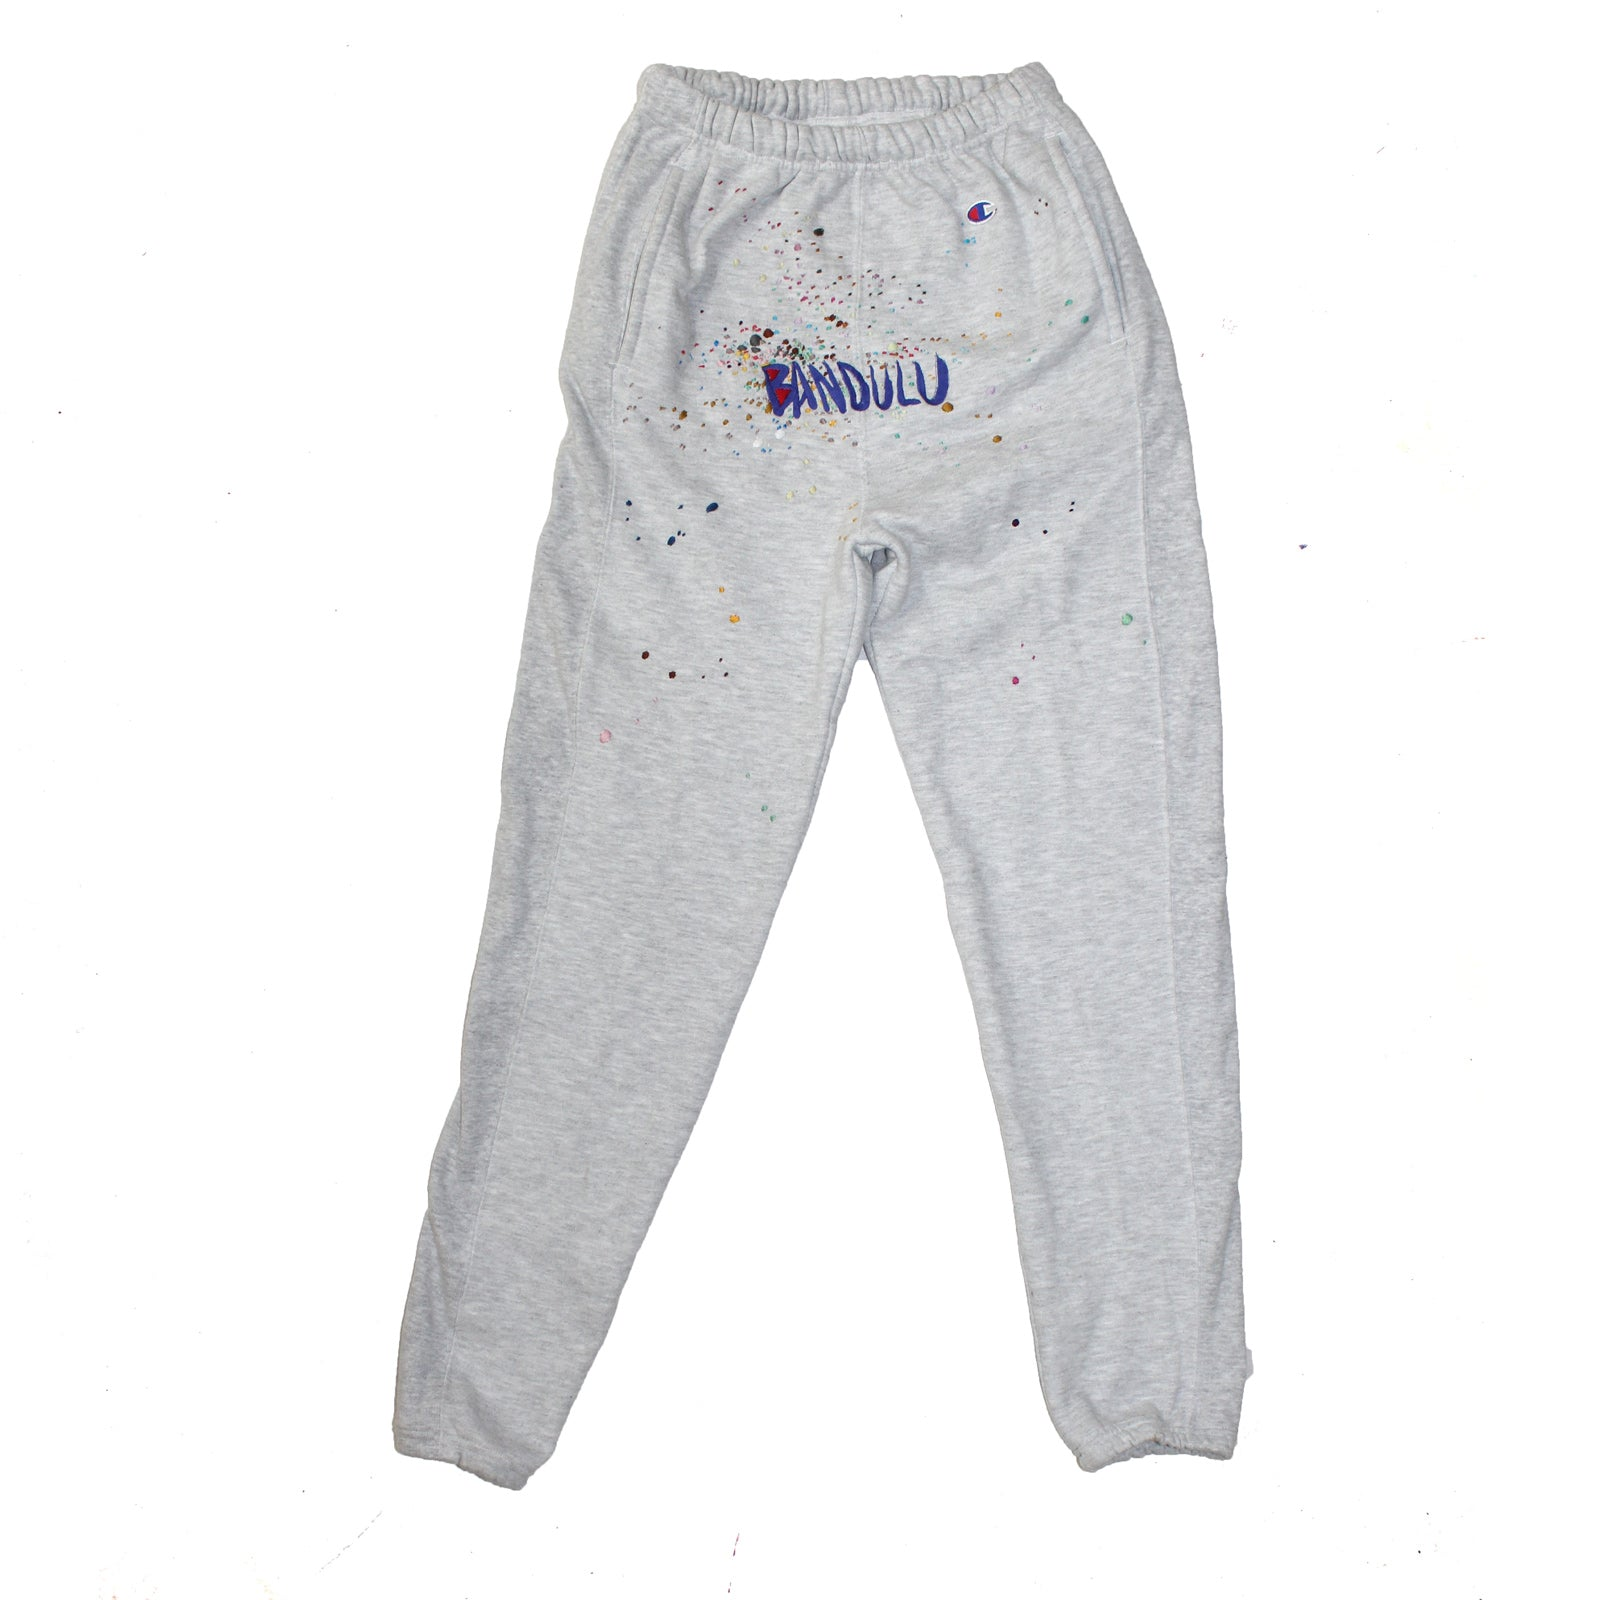 "BANDULU ""JUST FOR FUN"" VINTAGE CHAMPION SWEATPANTS"